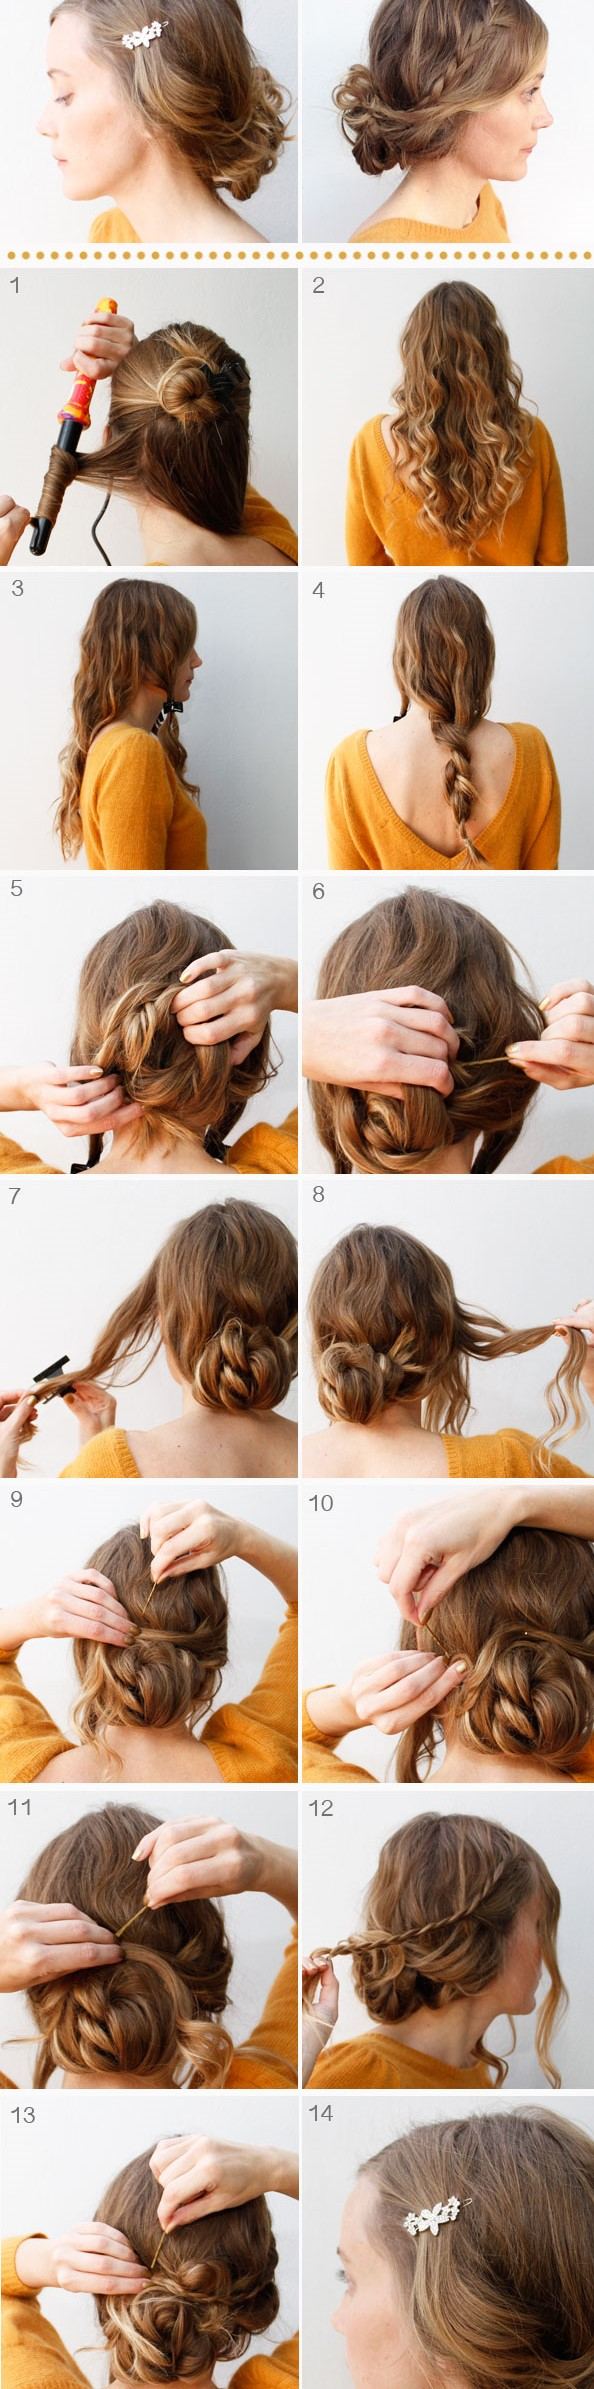 Messy Twisted Updo for Long Curly Hair